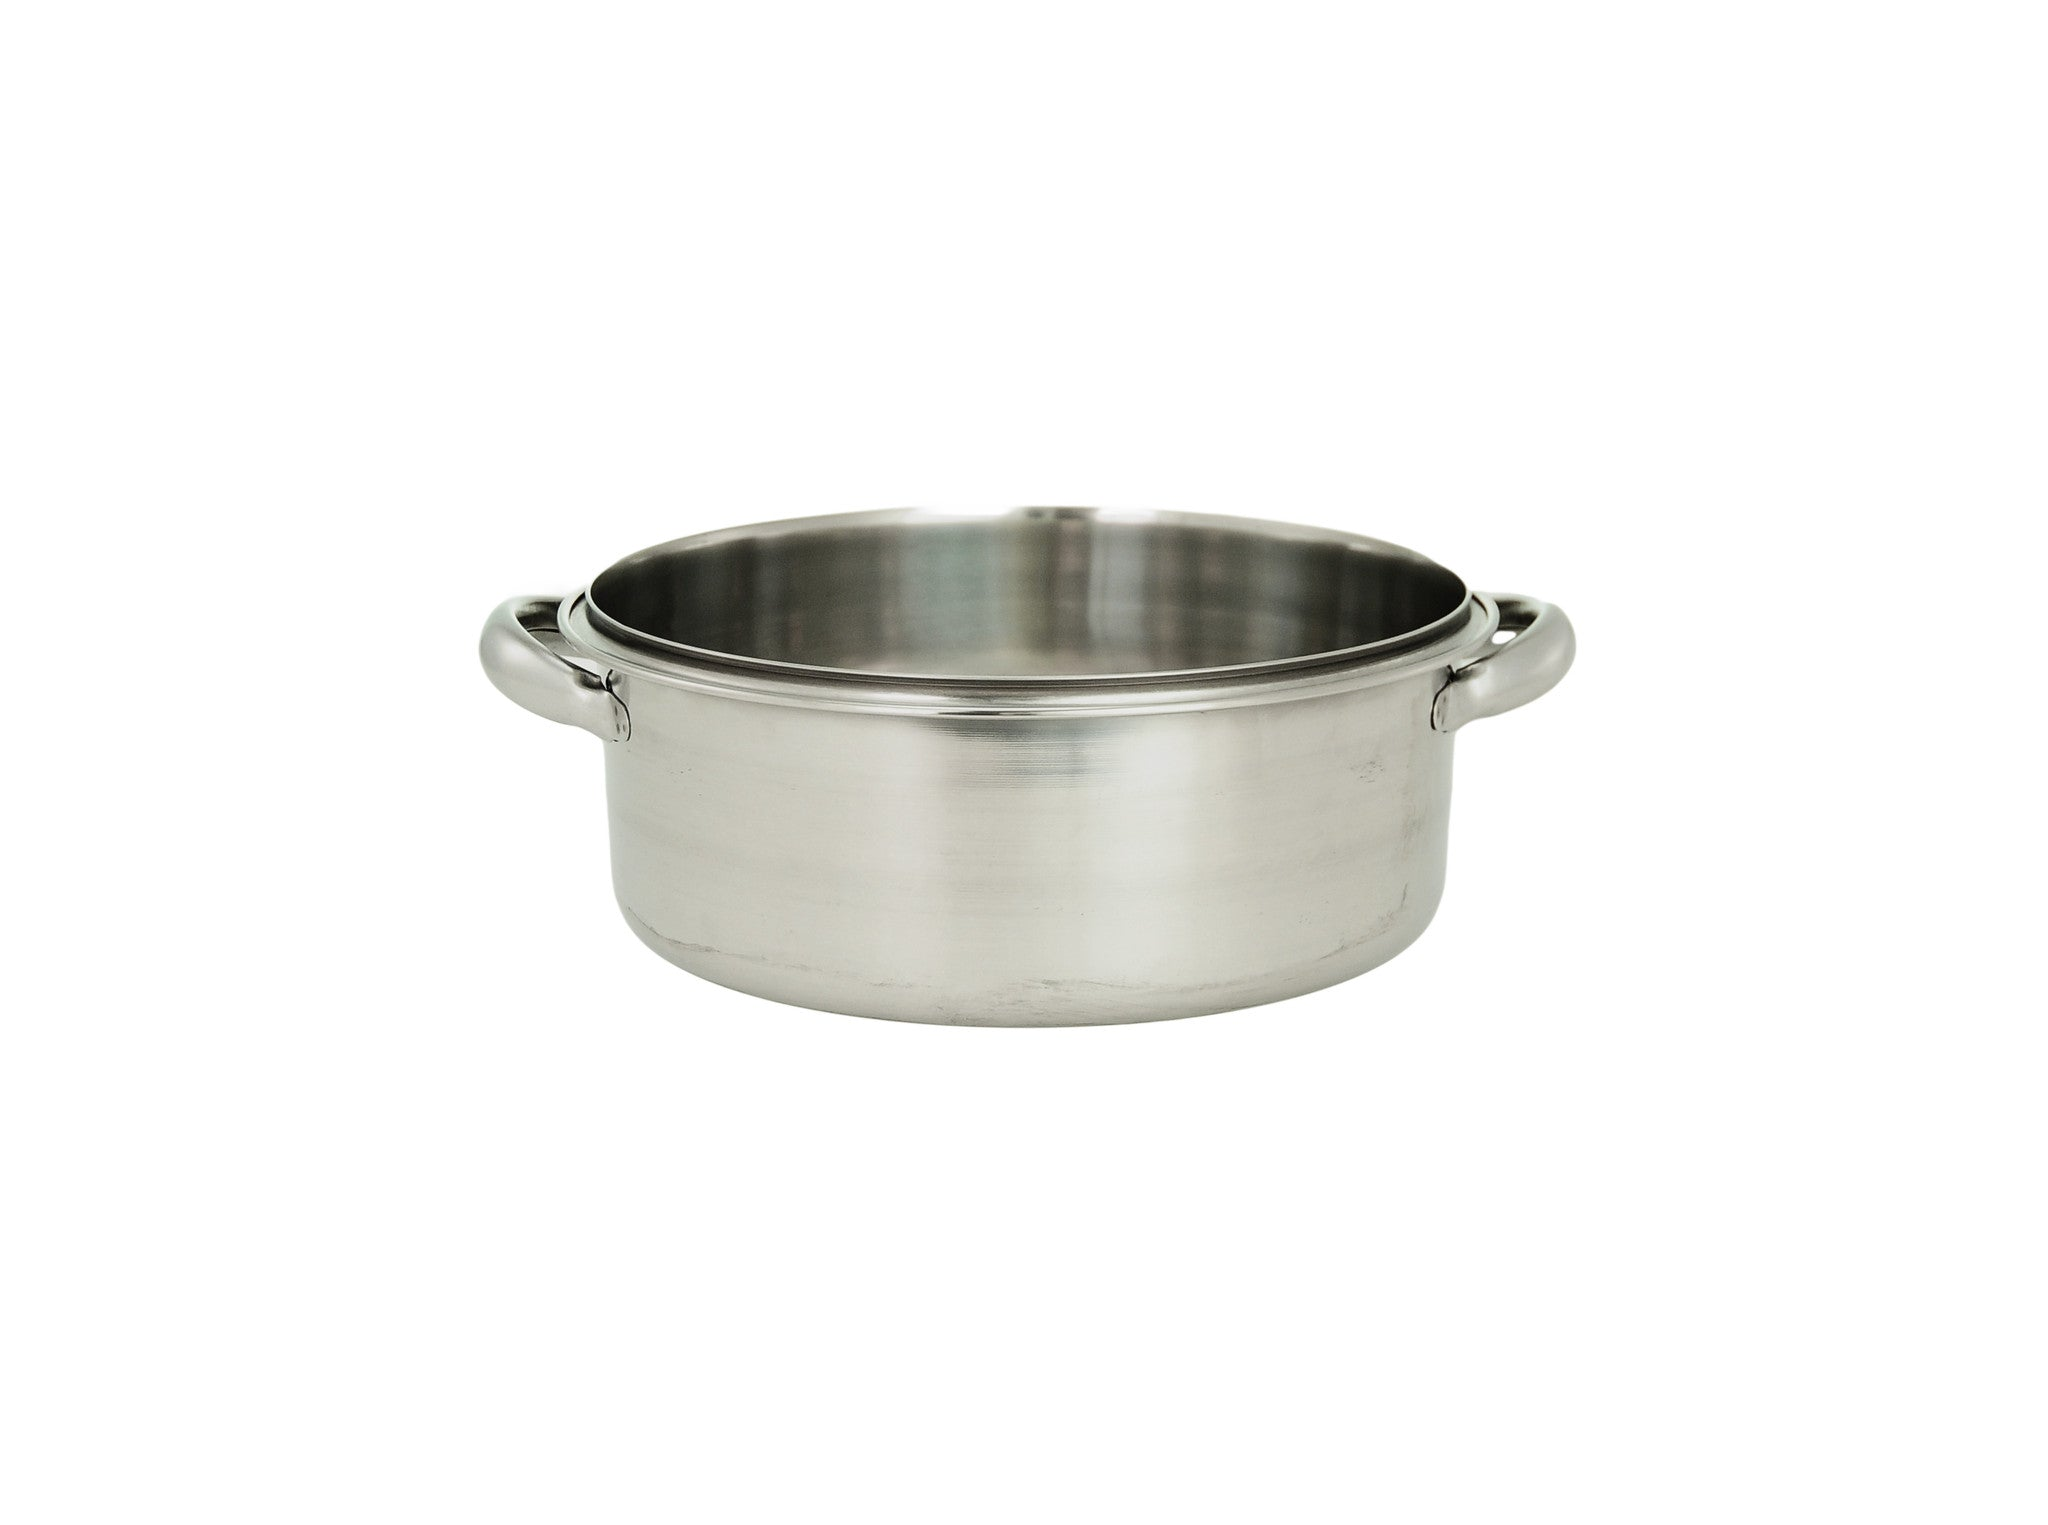 Stainless Steel Custom-Tier Steamer, 스댄 찜기, Cookware - eKitchenary